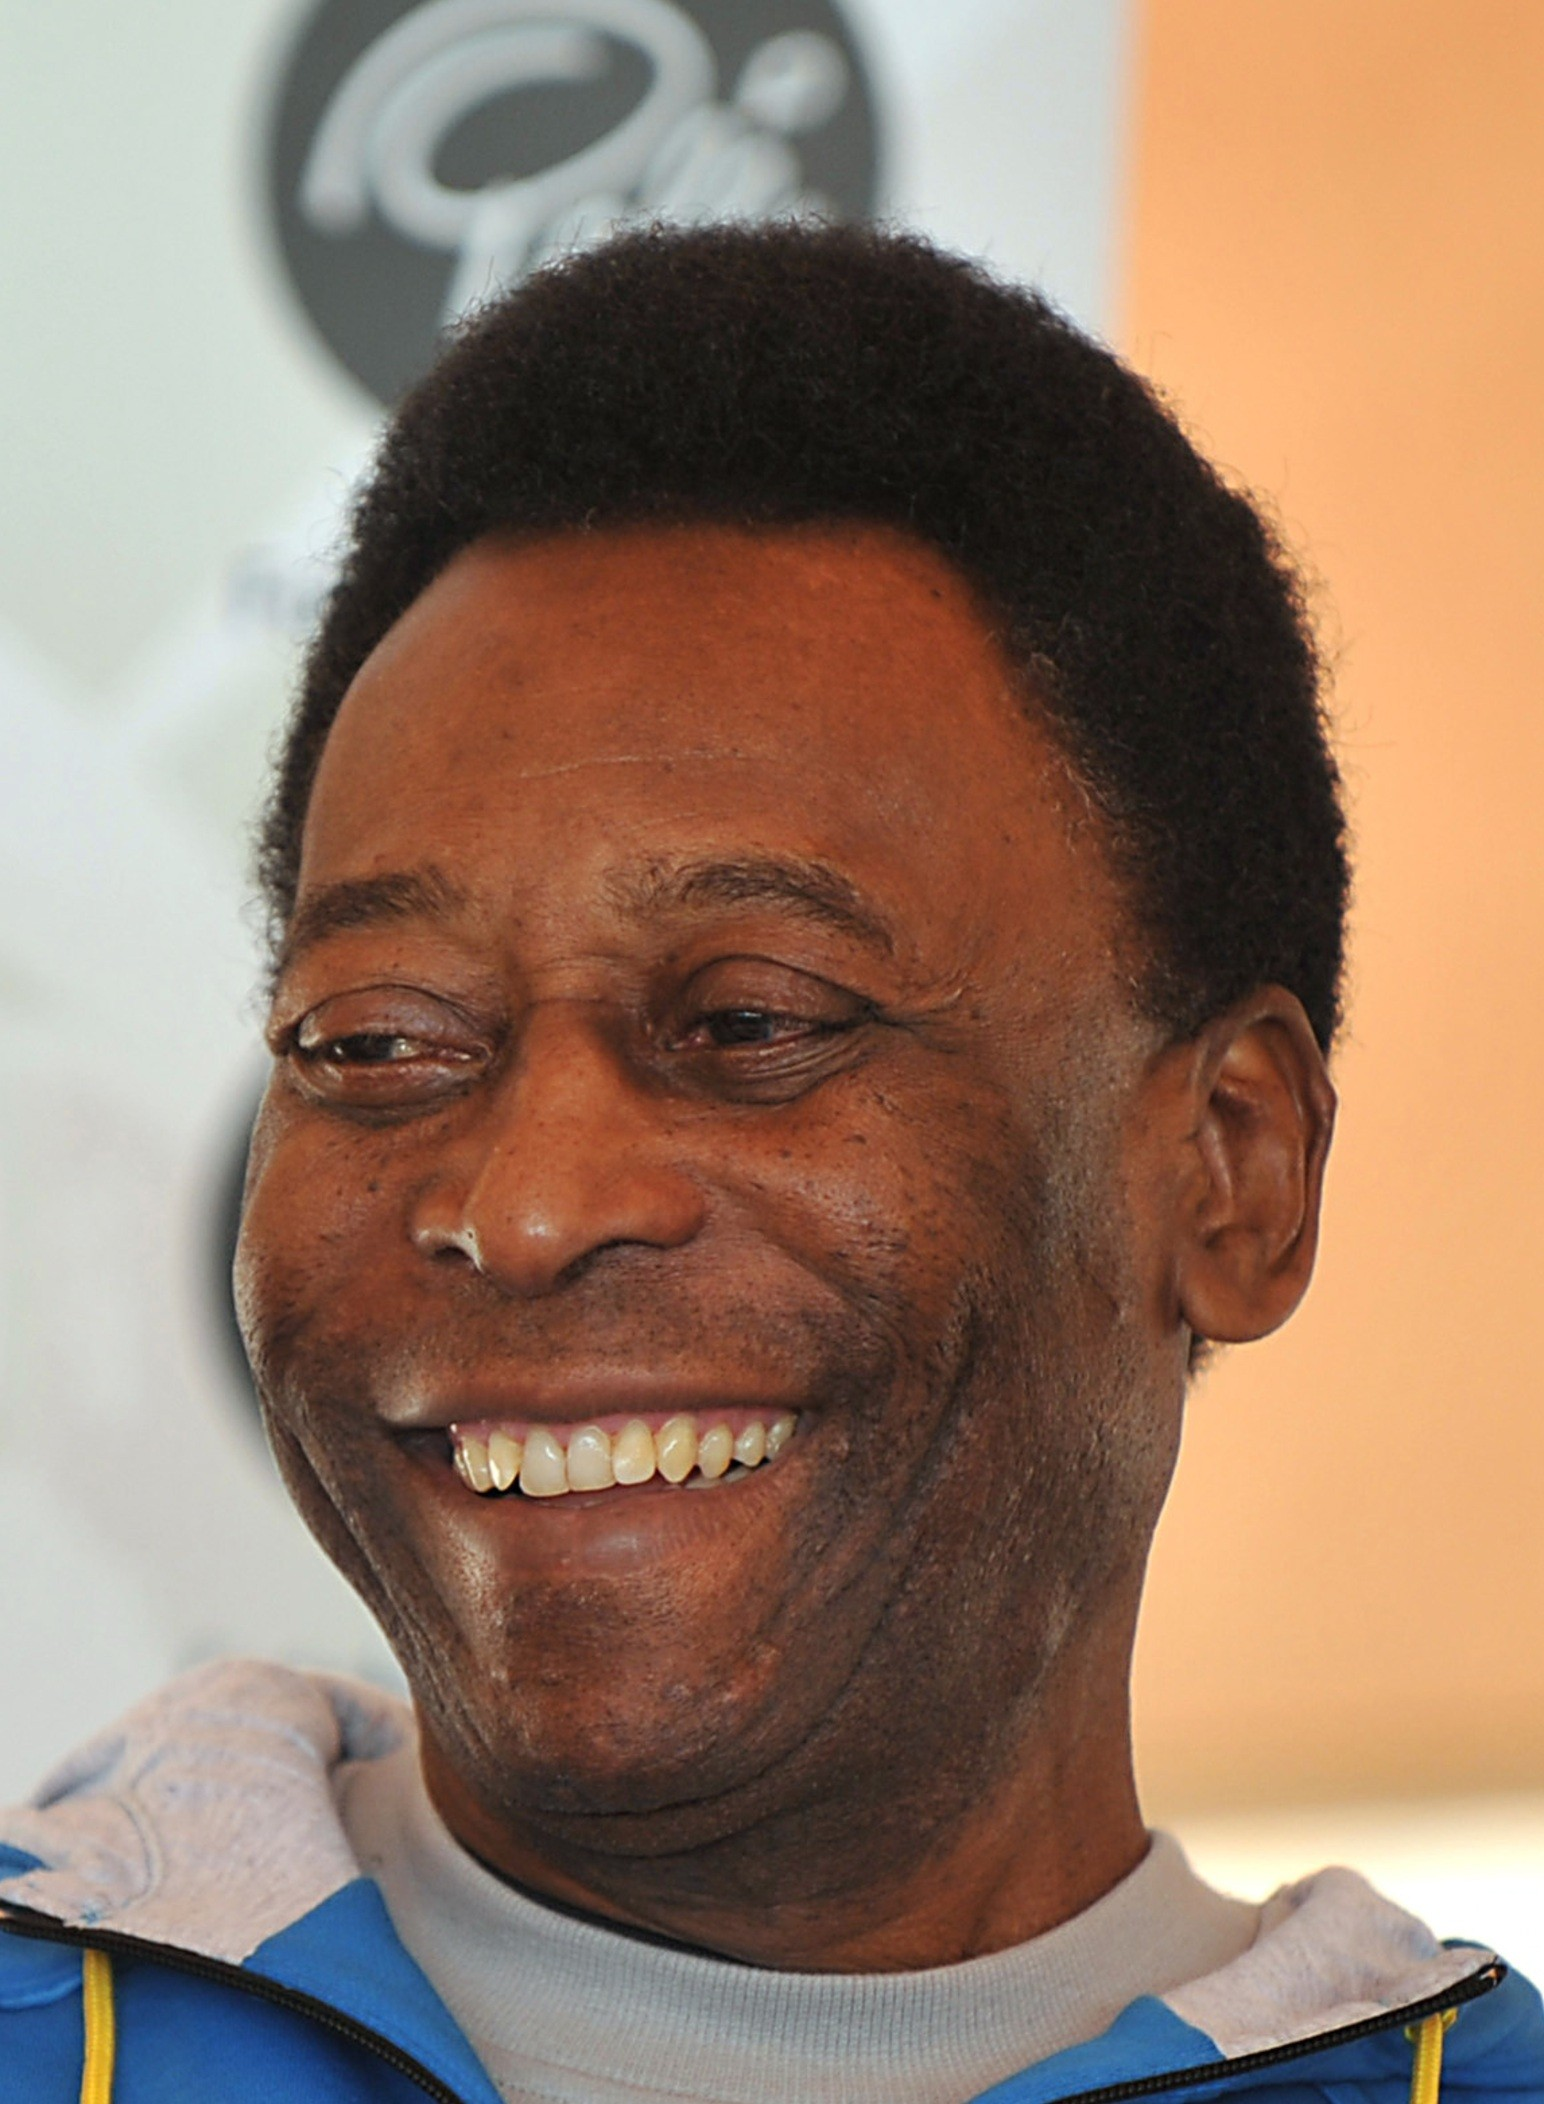 The 78-year old son of father  João Ramos do Nascimento and mother Celeste Arantes Pelé in 2018 photo. Pelé earned a  million dollar salary - leaving the net worth at 100 million in 2018